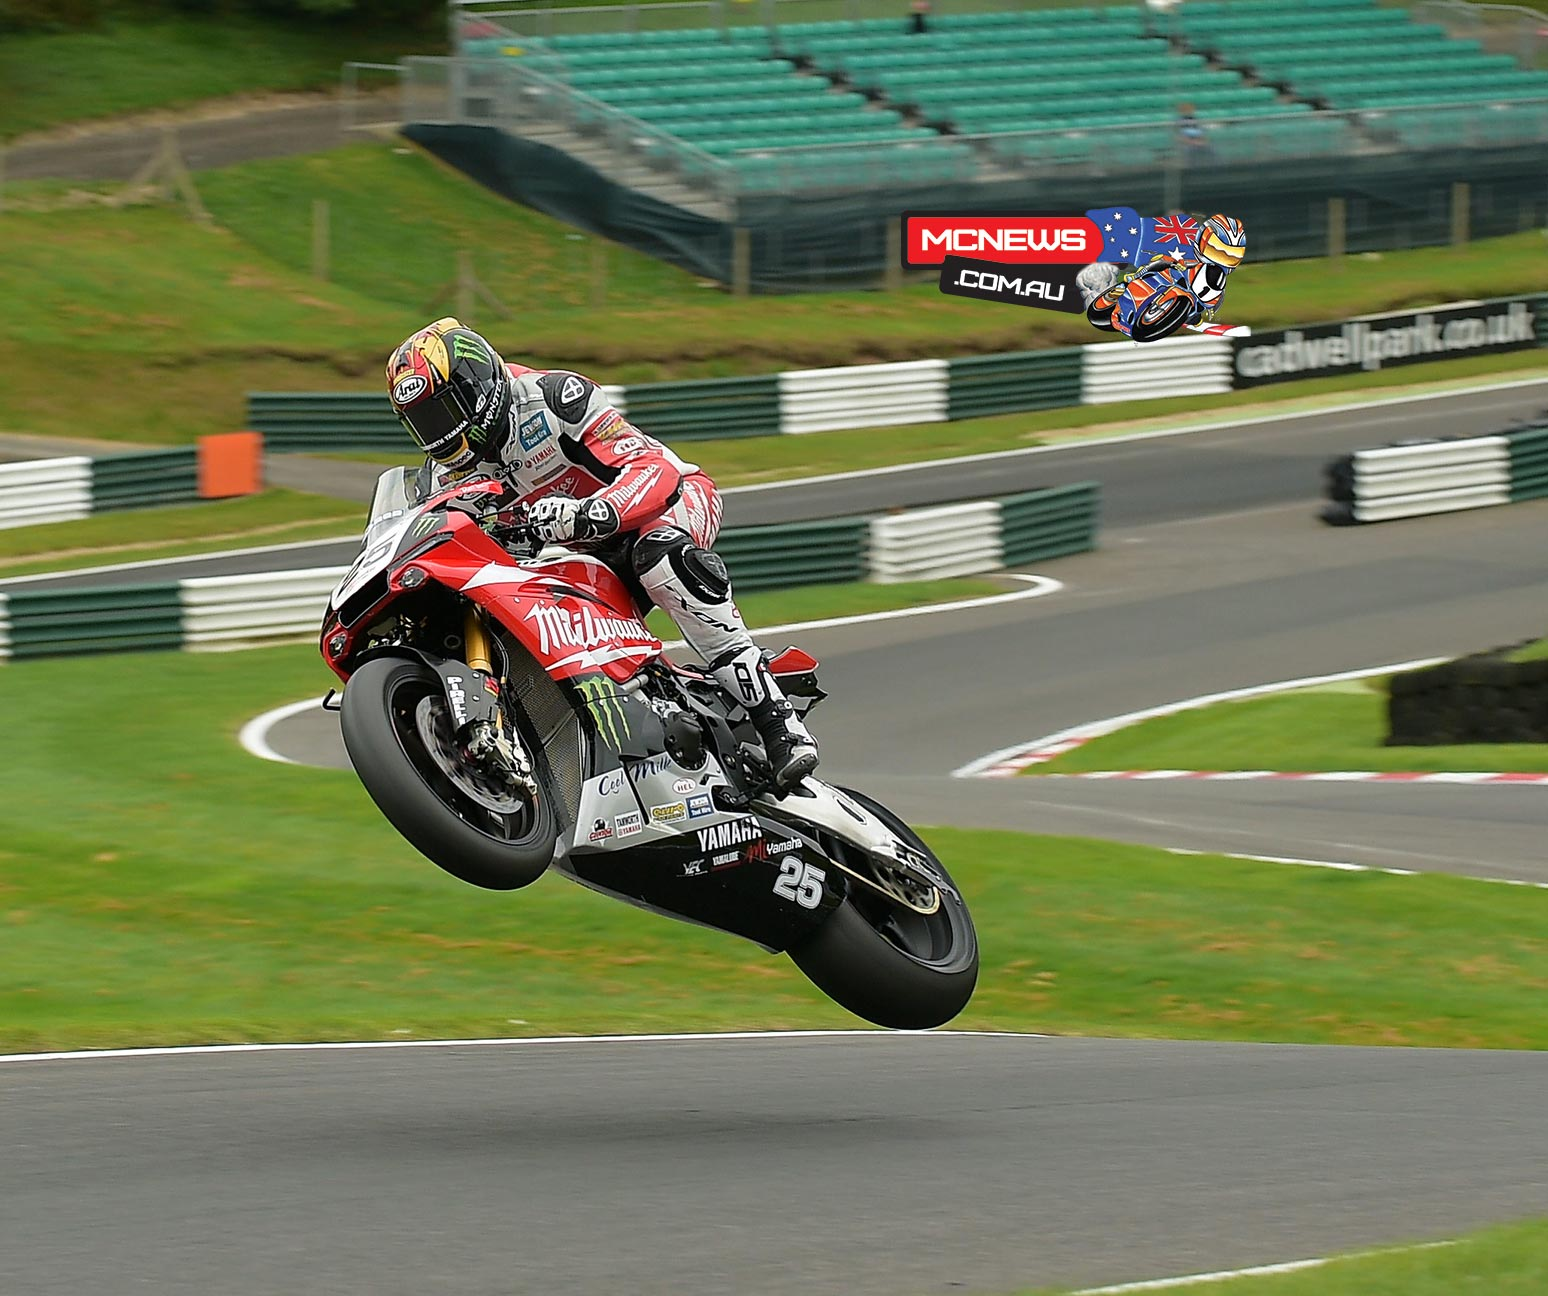 Josh Brookes leaps the Mountain at Cadwell Park